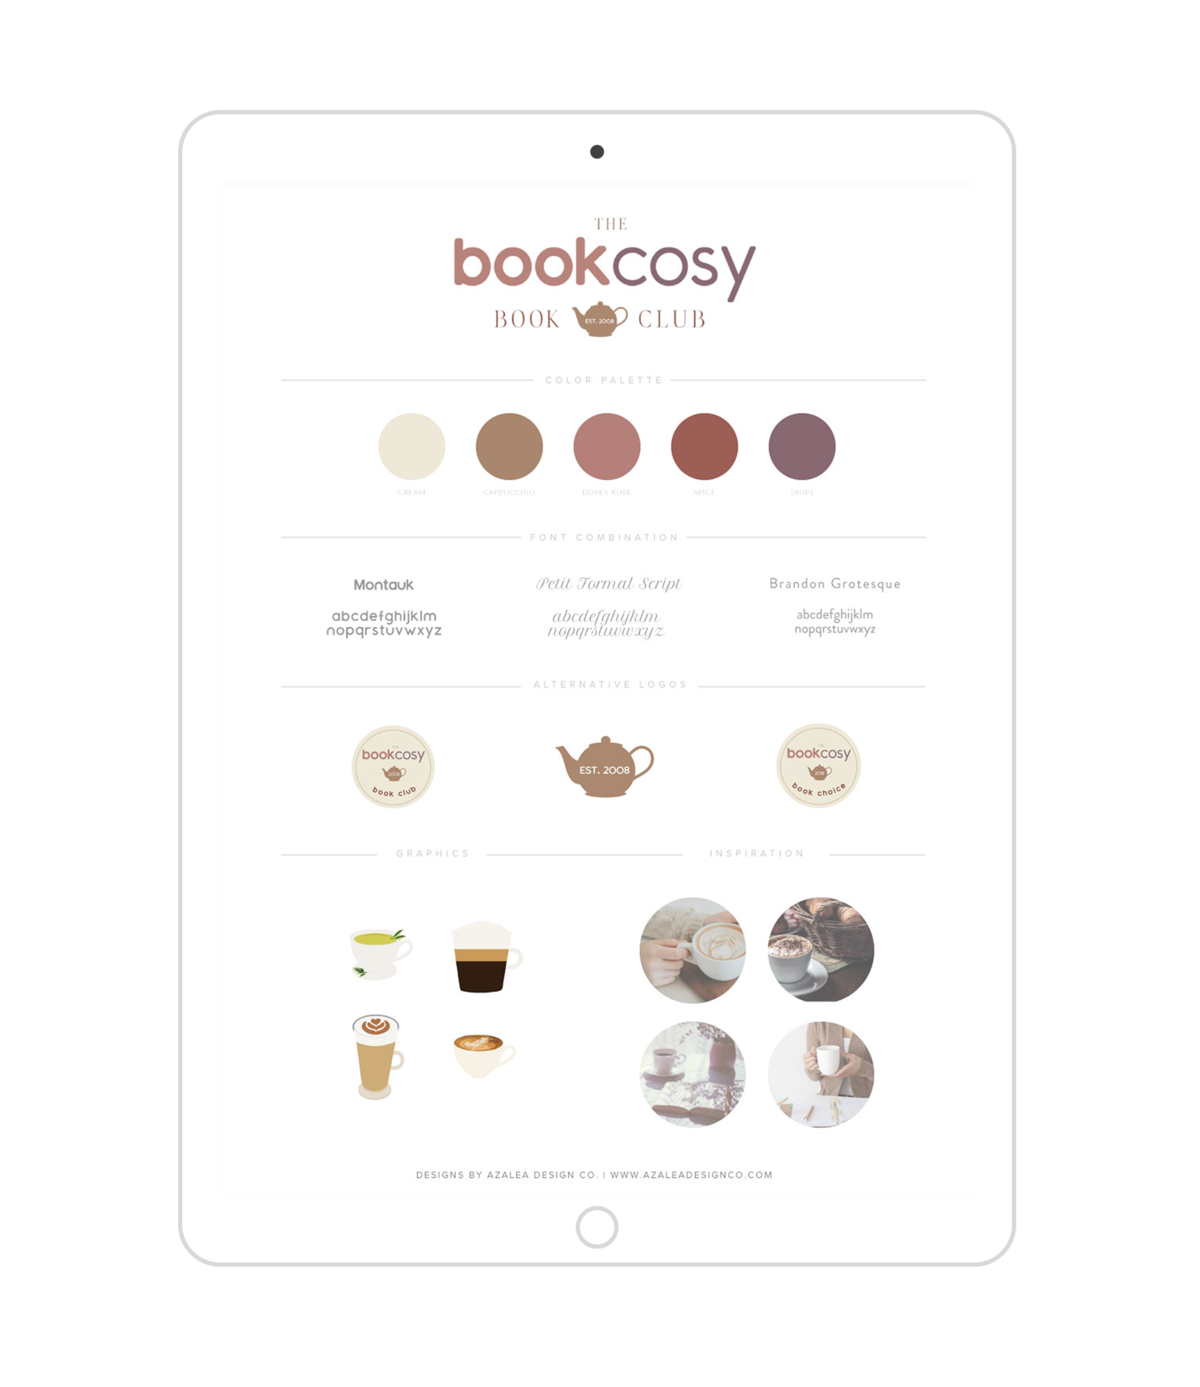 The BookCosy Branding